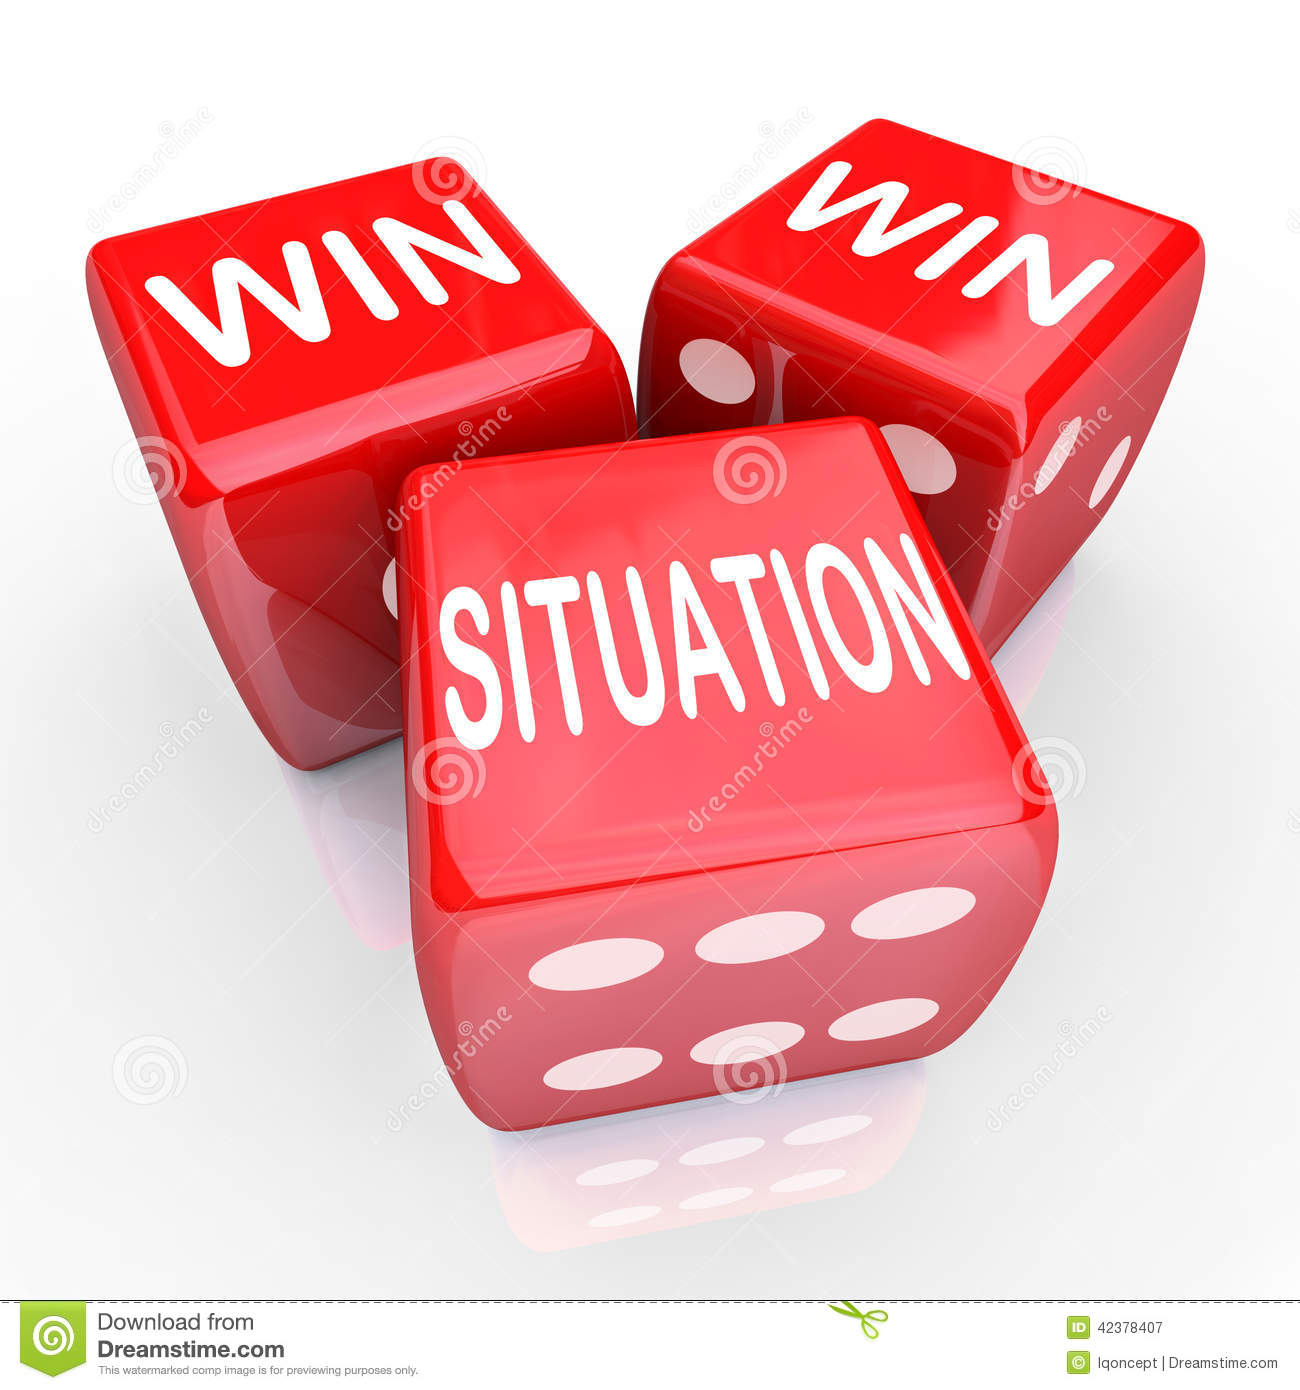 win win situation Examine how a poorly implemented win-win negotiation style can fail to deliver business goals and leaves gold on the table.